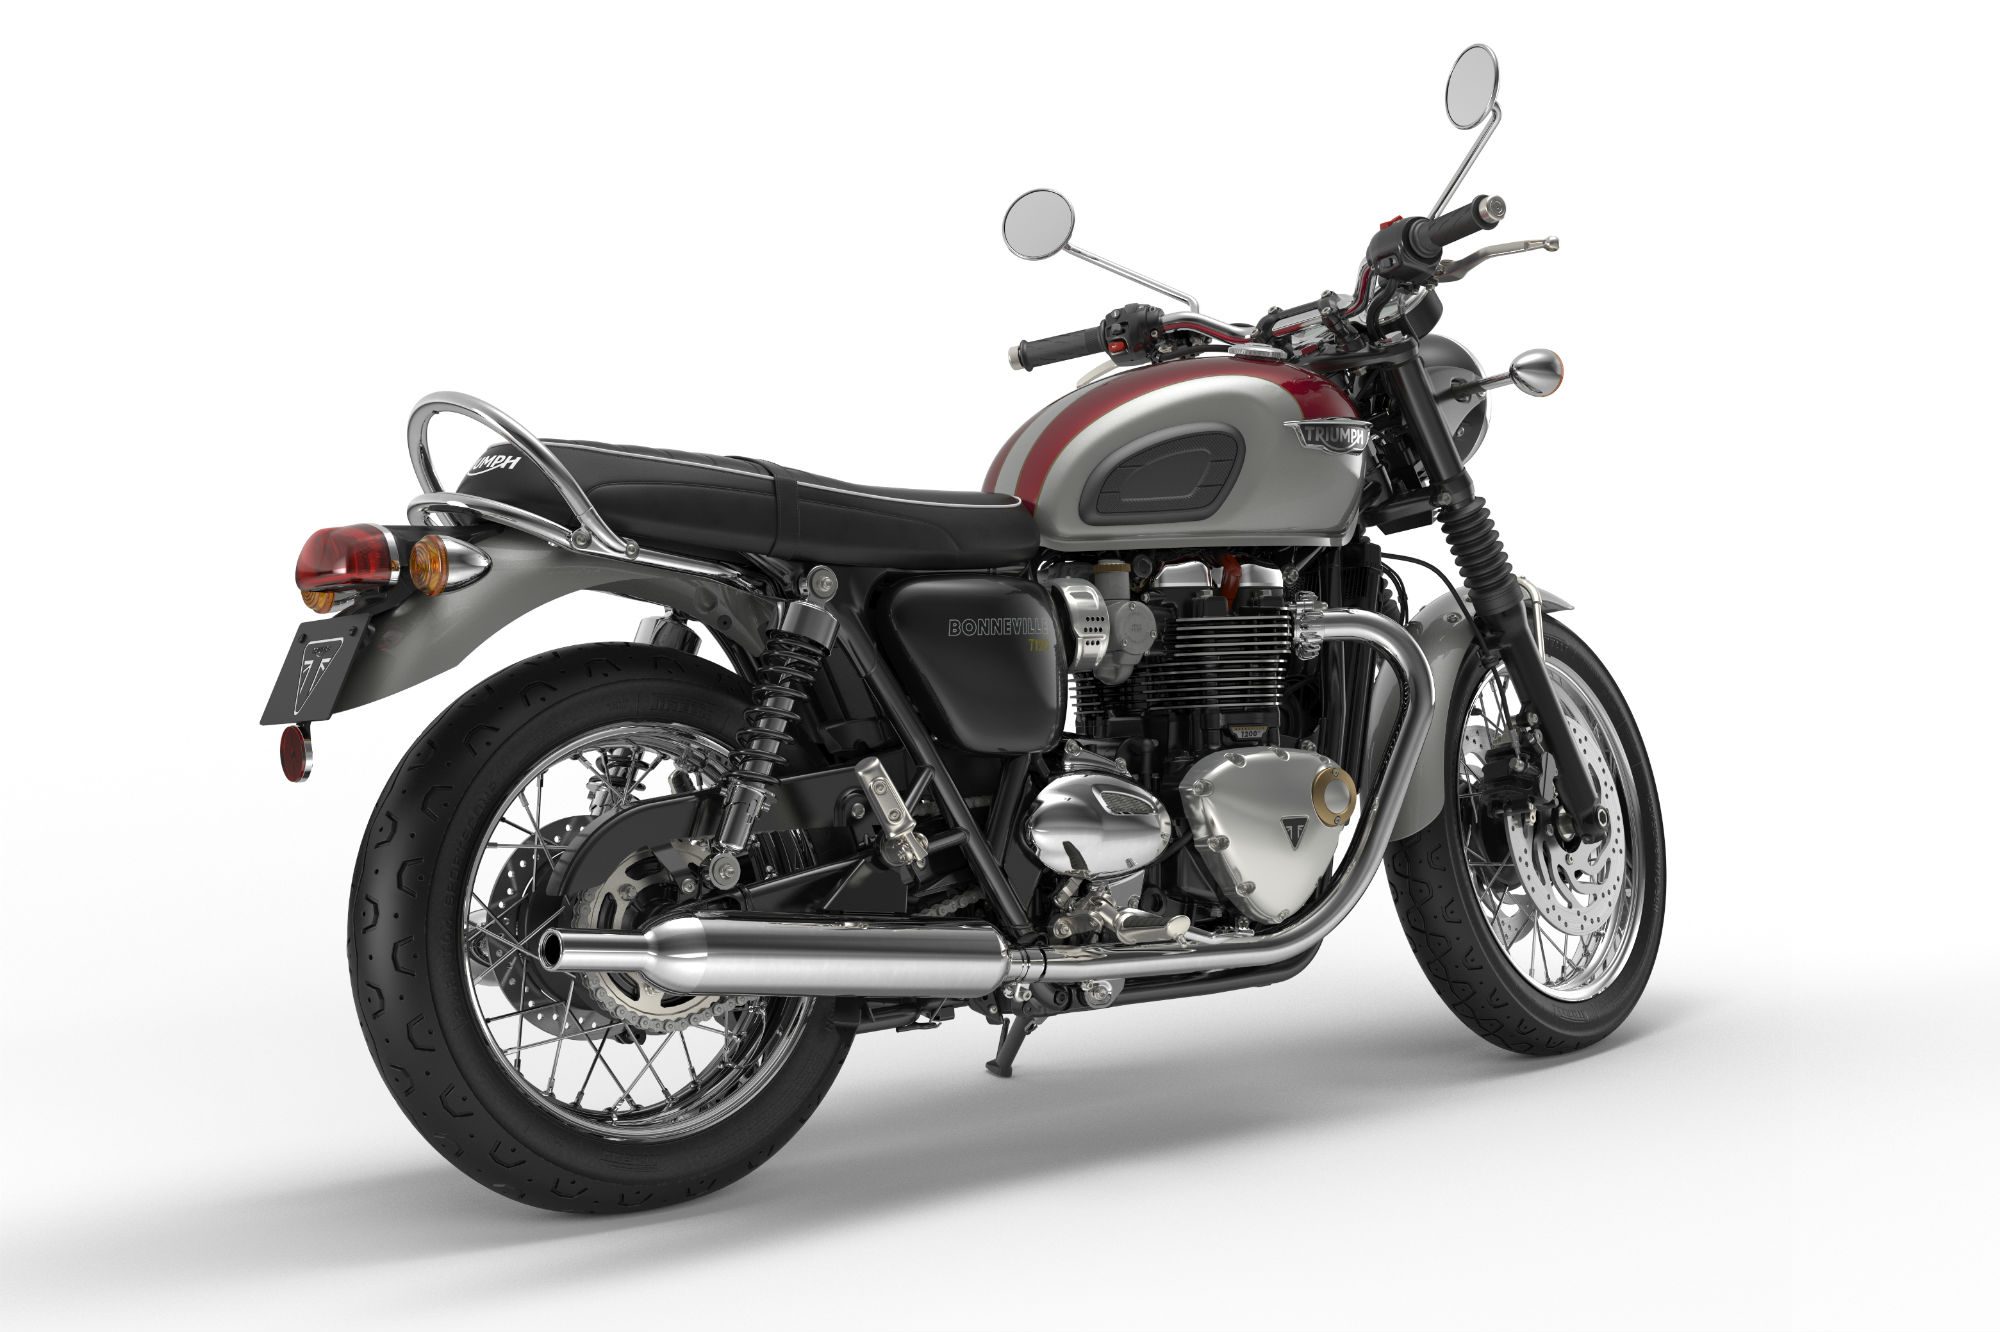 new triumph bonneville family revealed visordown. Black Bedroom Furniture Sets. Home Design Ideas